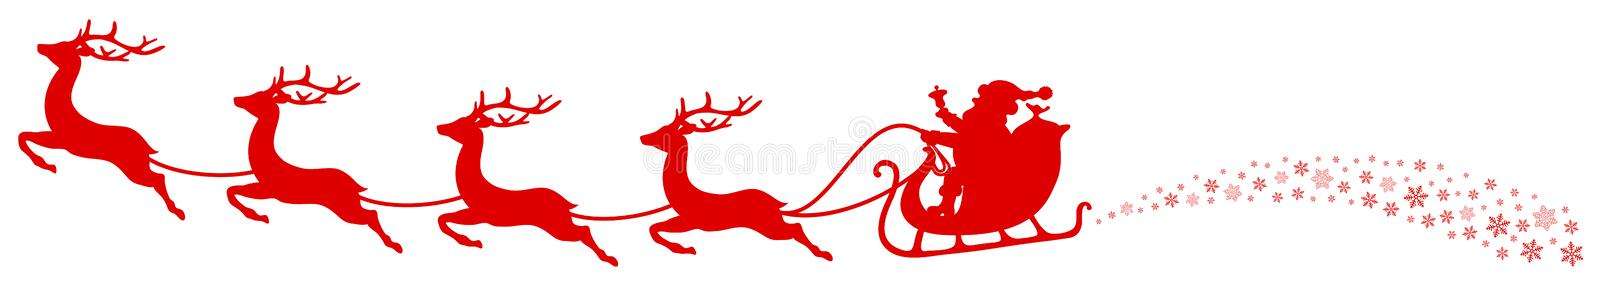 Trineo horizontal Santa And Flying Reindeers Swirl de la Navidad roja libre illustration